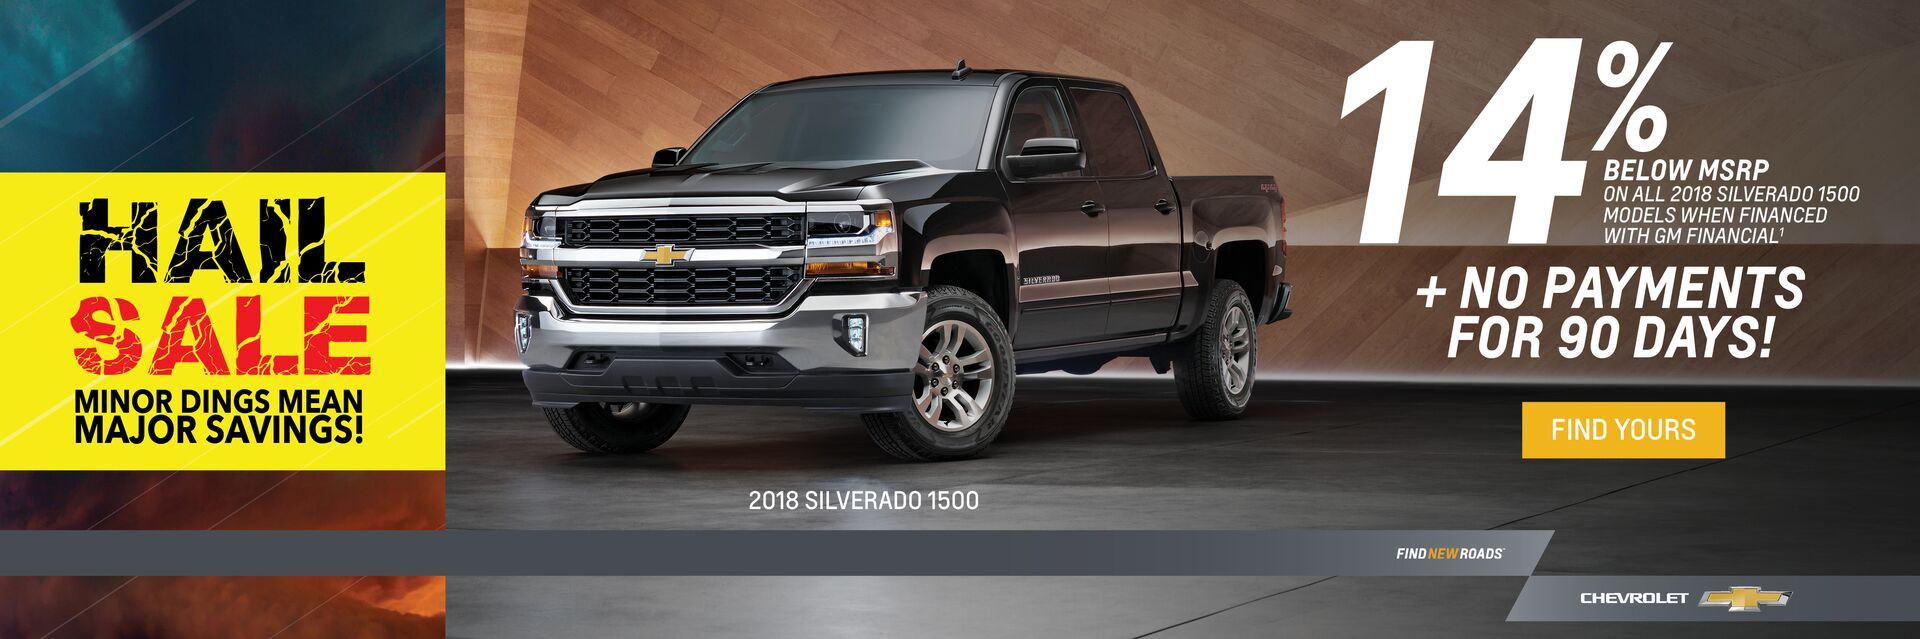 Save on a new Chevy at Holiday Automotive in Fond du Lac